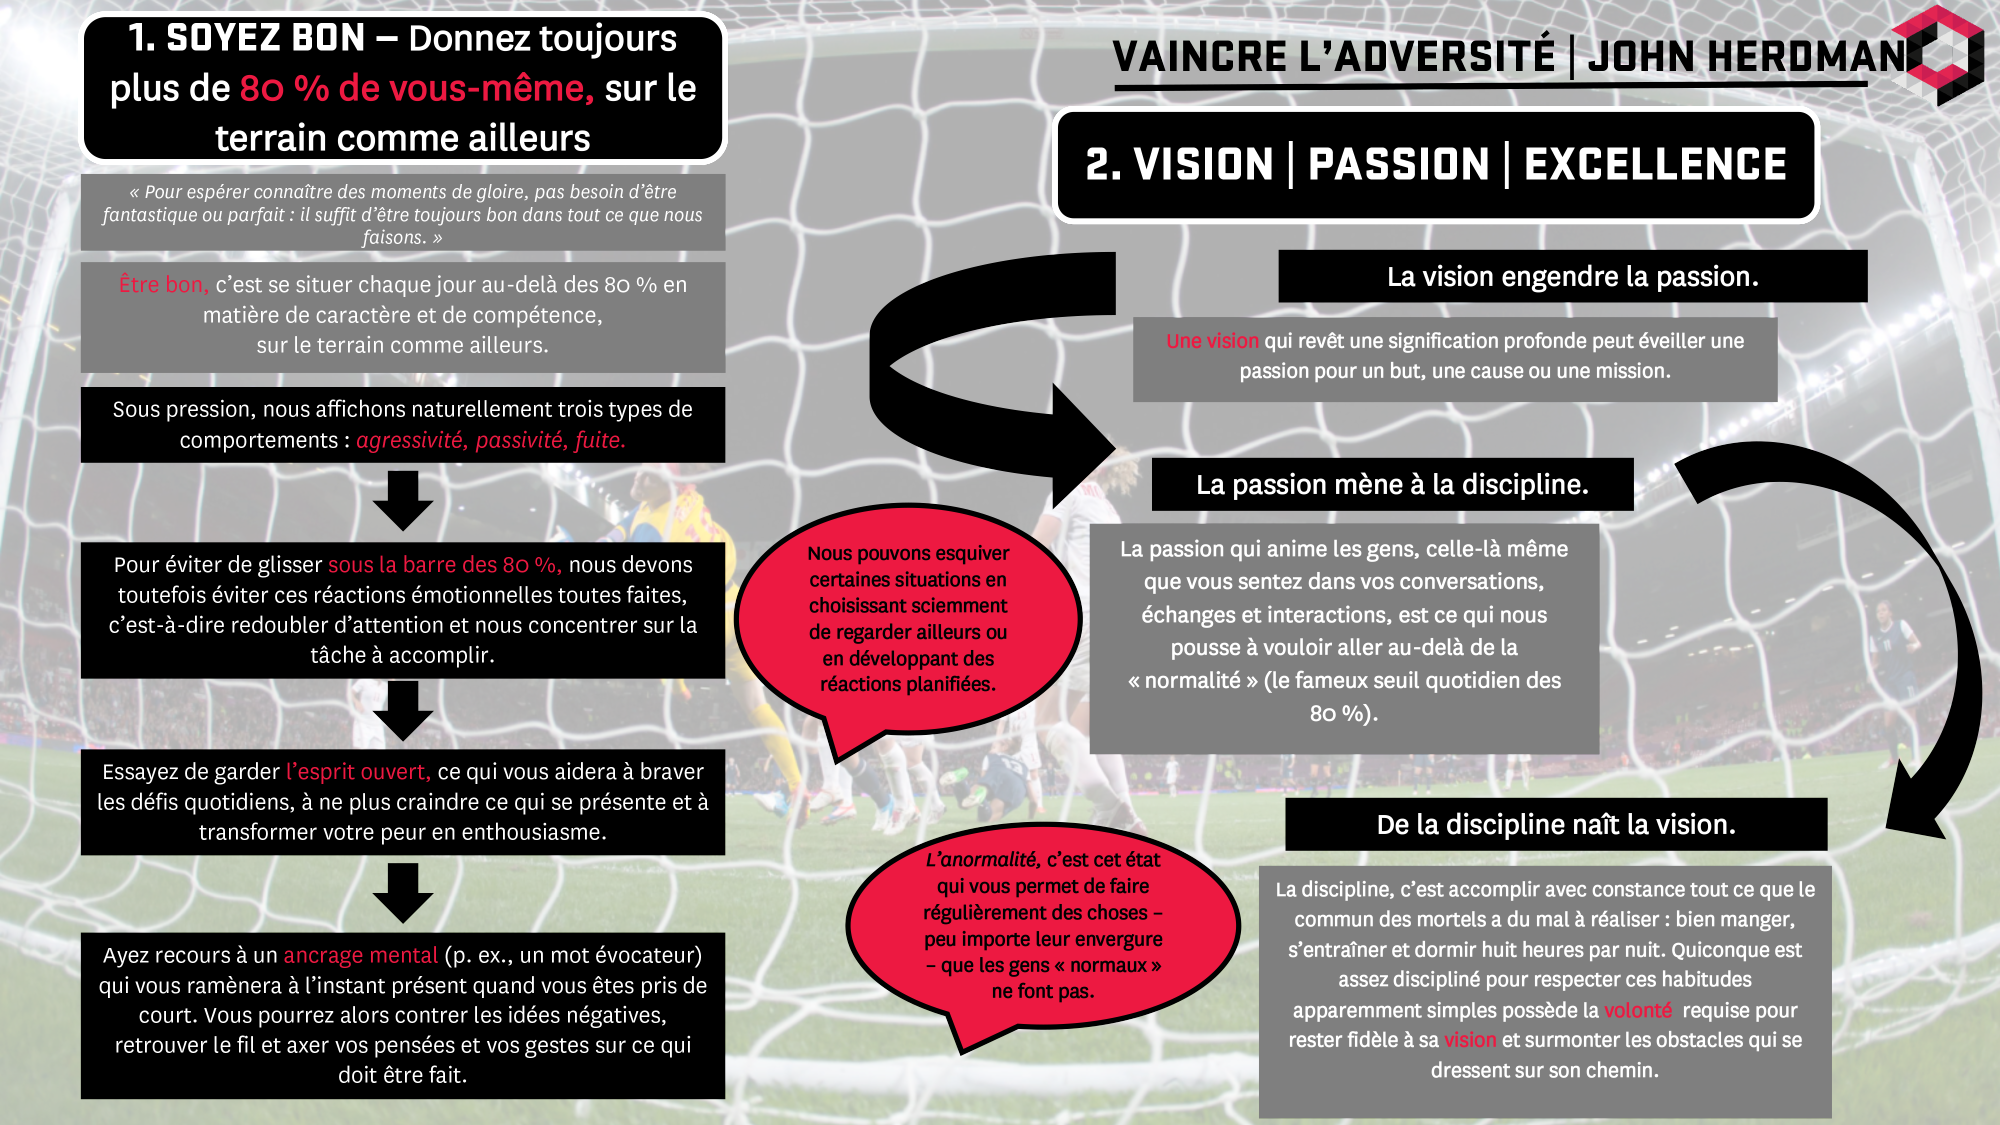 http://sport.olympic.ca/insider/wp-content/uploads/2017/11/OLab-Infographics-FR-FINAL-2-1.png